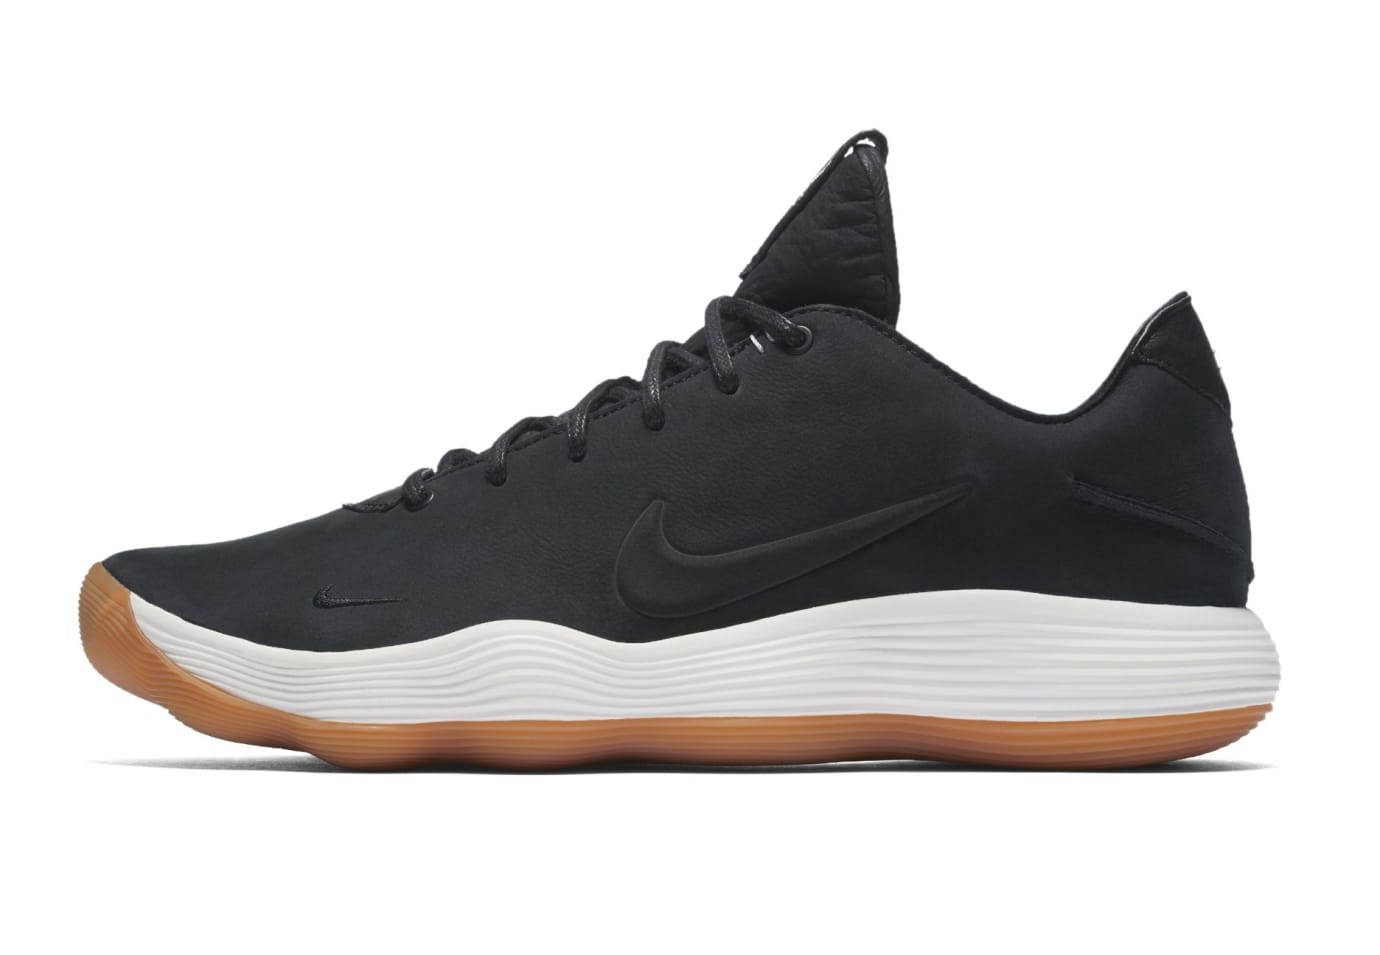 Nike Hyperdunk 2017 Low Lifestyle Black (Lateral)